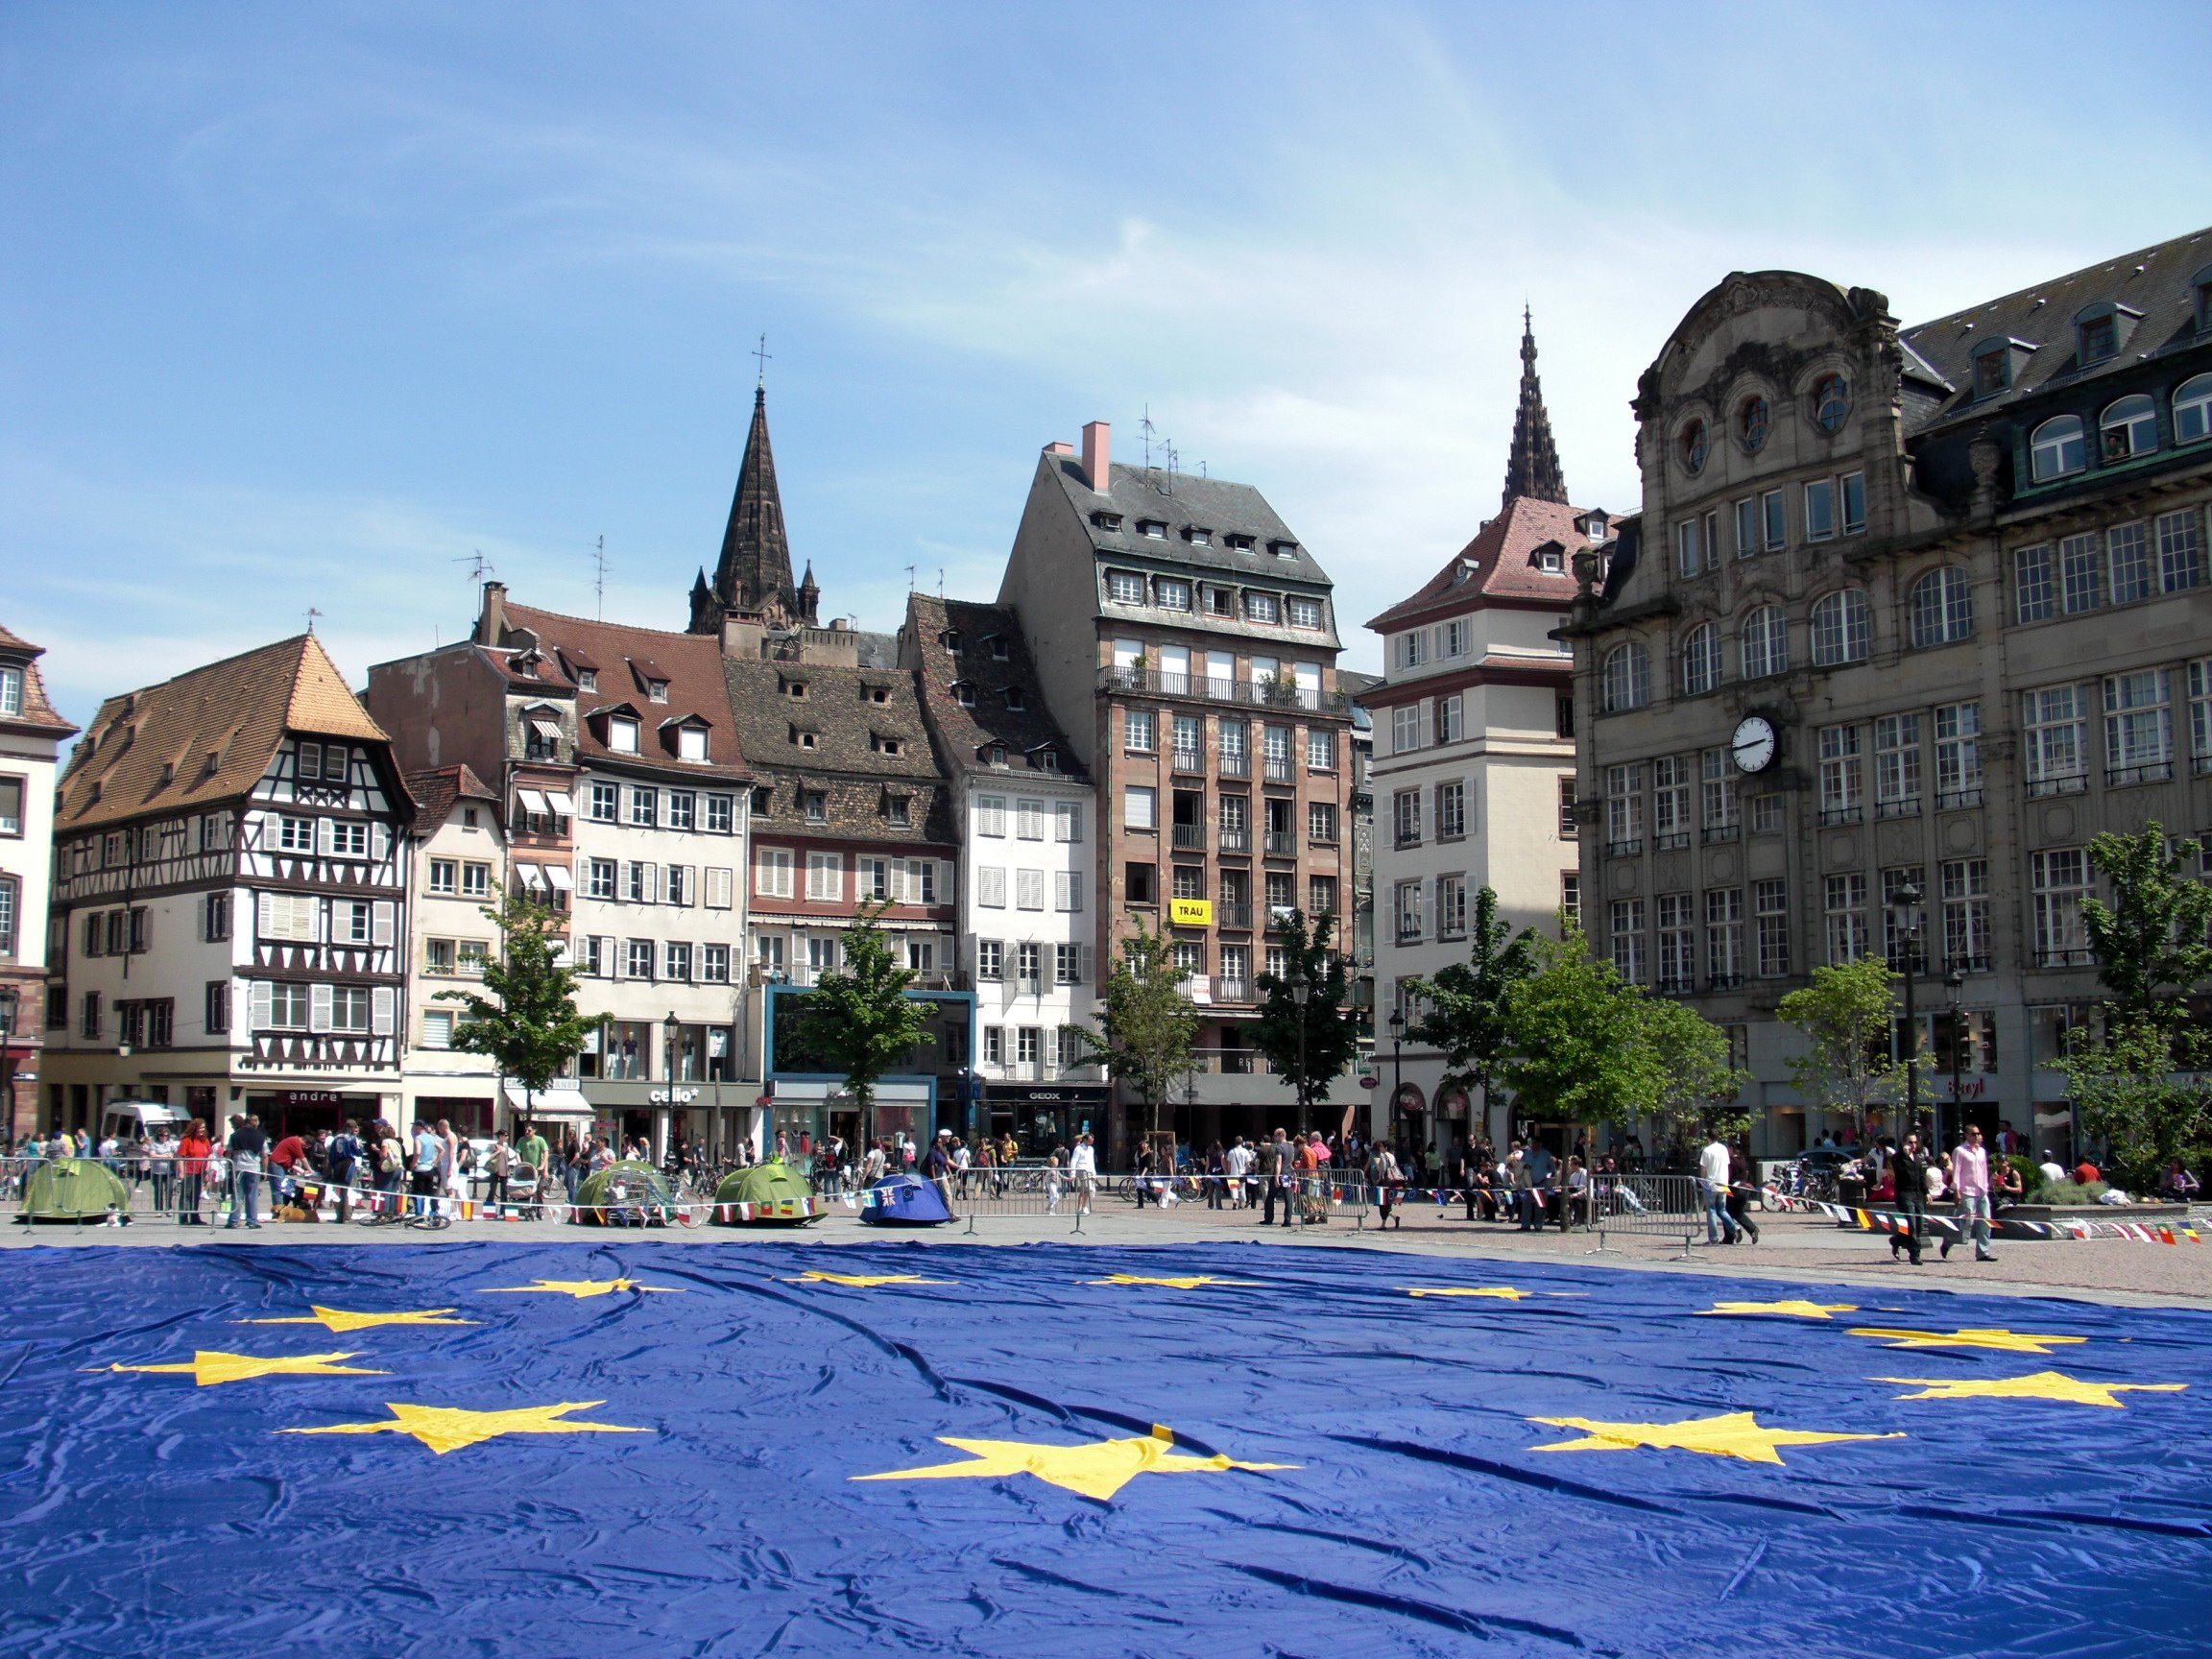 Big_european_flag_at_Strasbourg_(France)_-_Europe_Day_2009